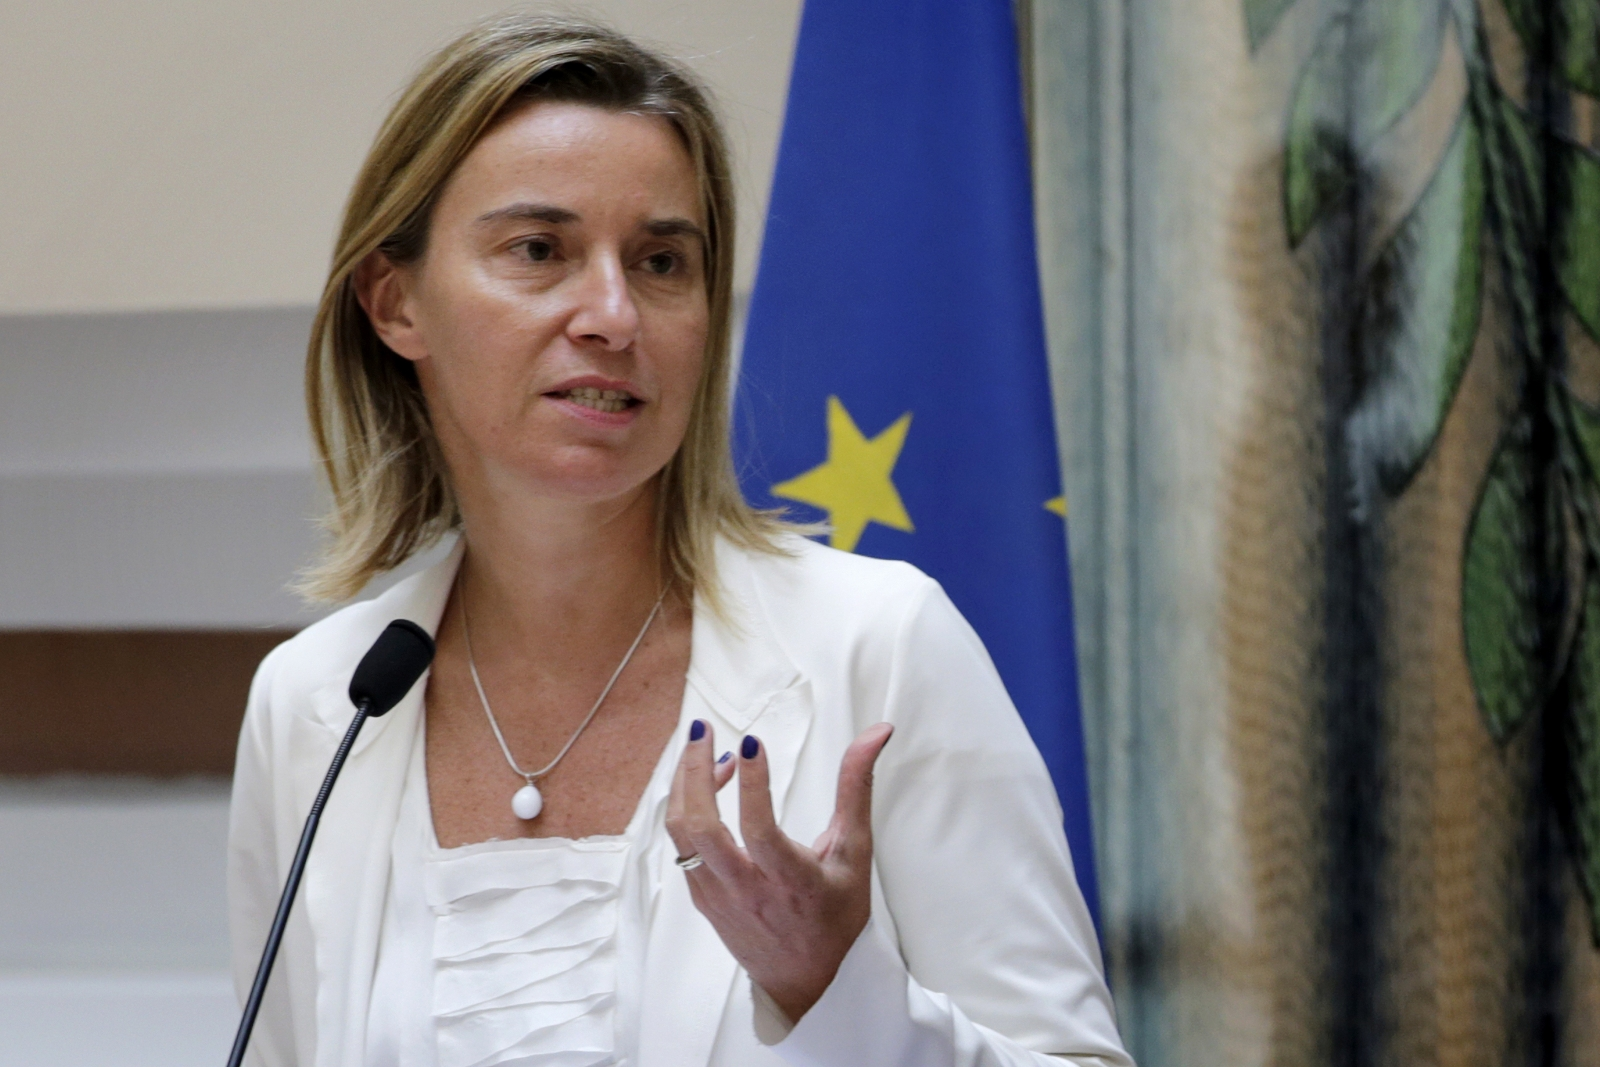 EU Foreign Policy Chief Federica Mogheirni